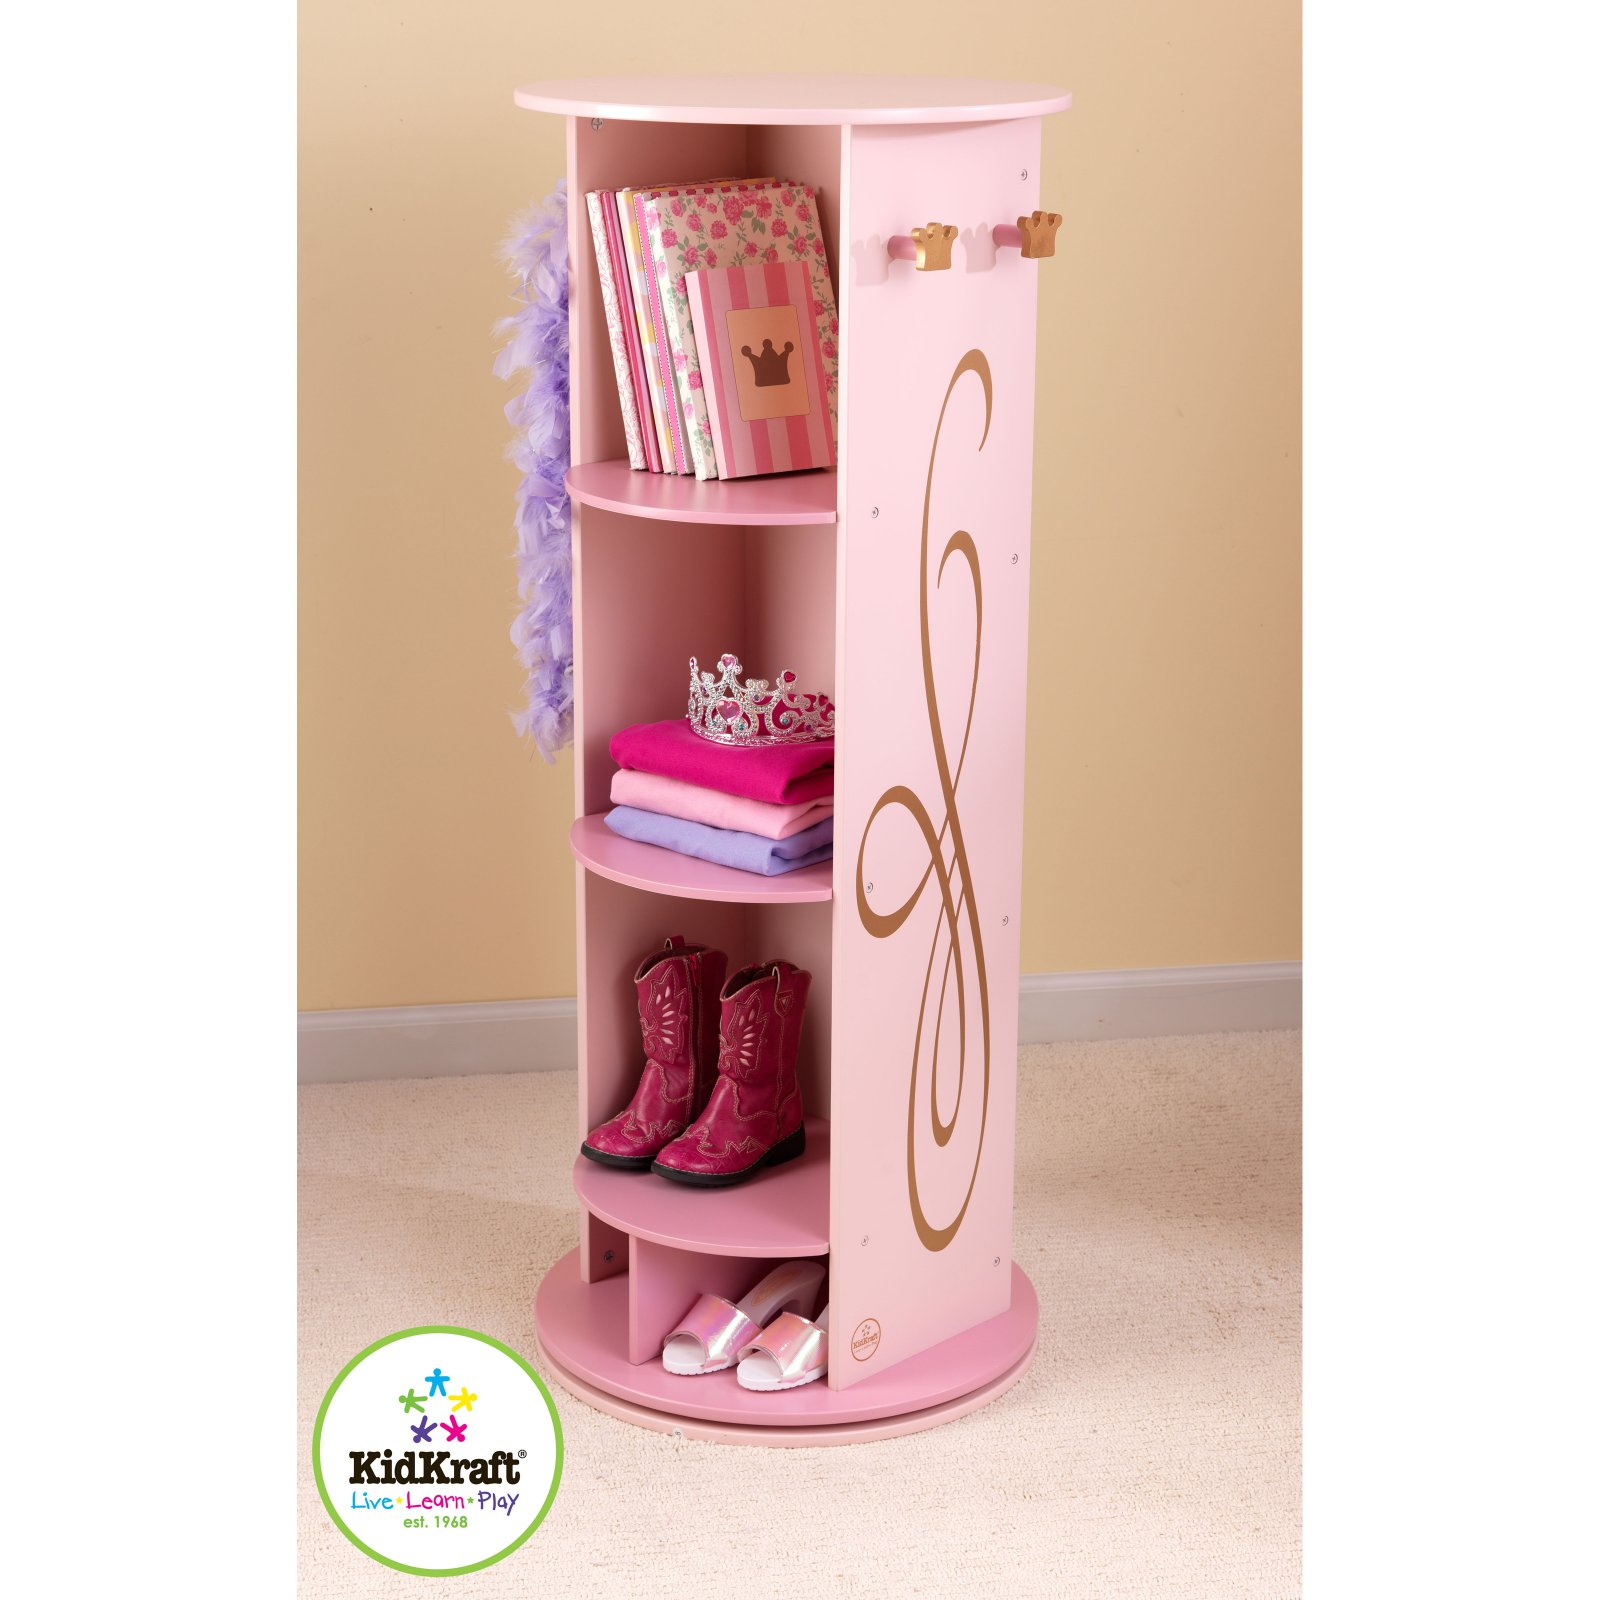 KidKraft Princess Toddler Bedroom Collection - Walmart.com on kidkraft lounge set, kidkraft rocking chair, kidkraft storage, kidkraft toys, kidkraft bookcase, kidkraft desk, kidkraft high chair, kidkraft wardrobe, kidkraft table,